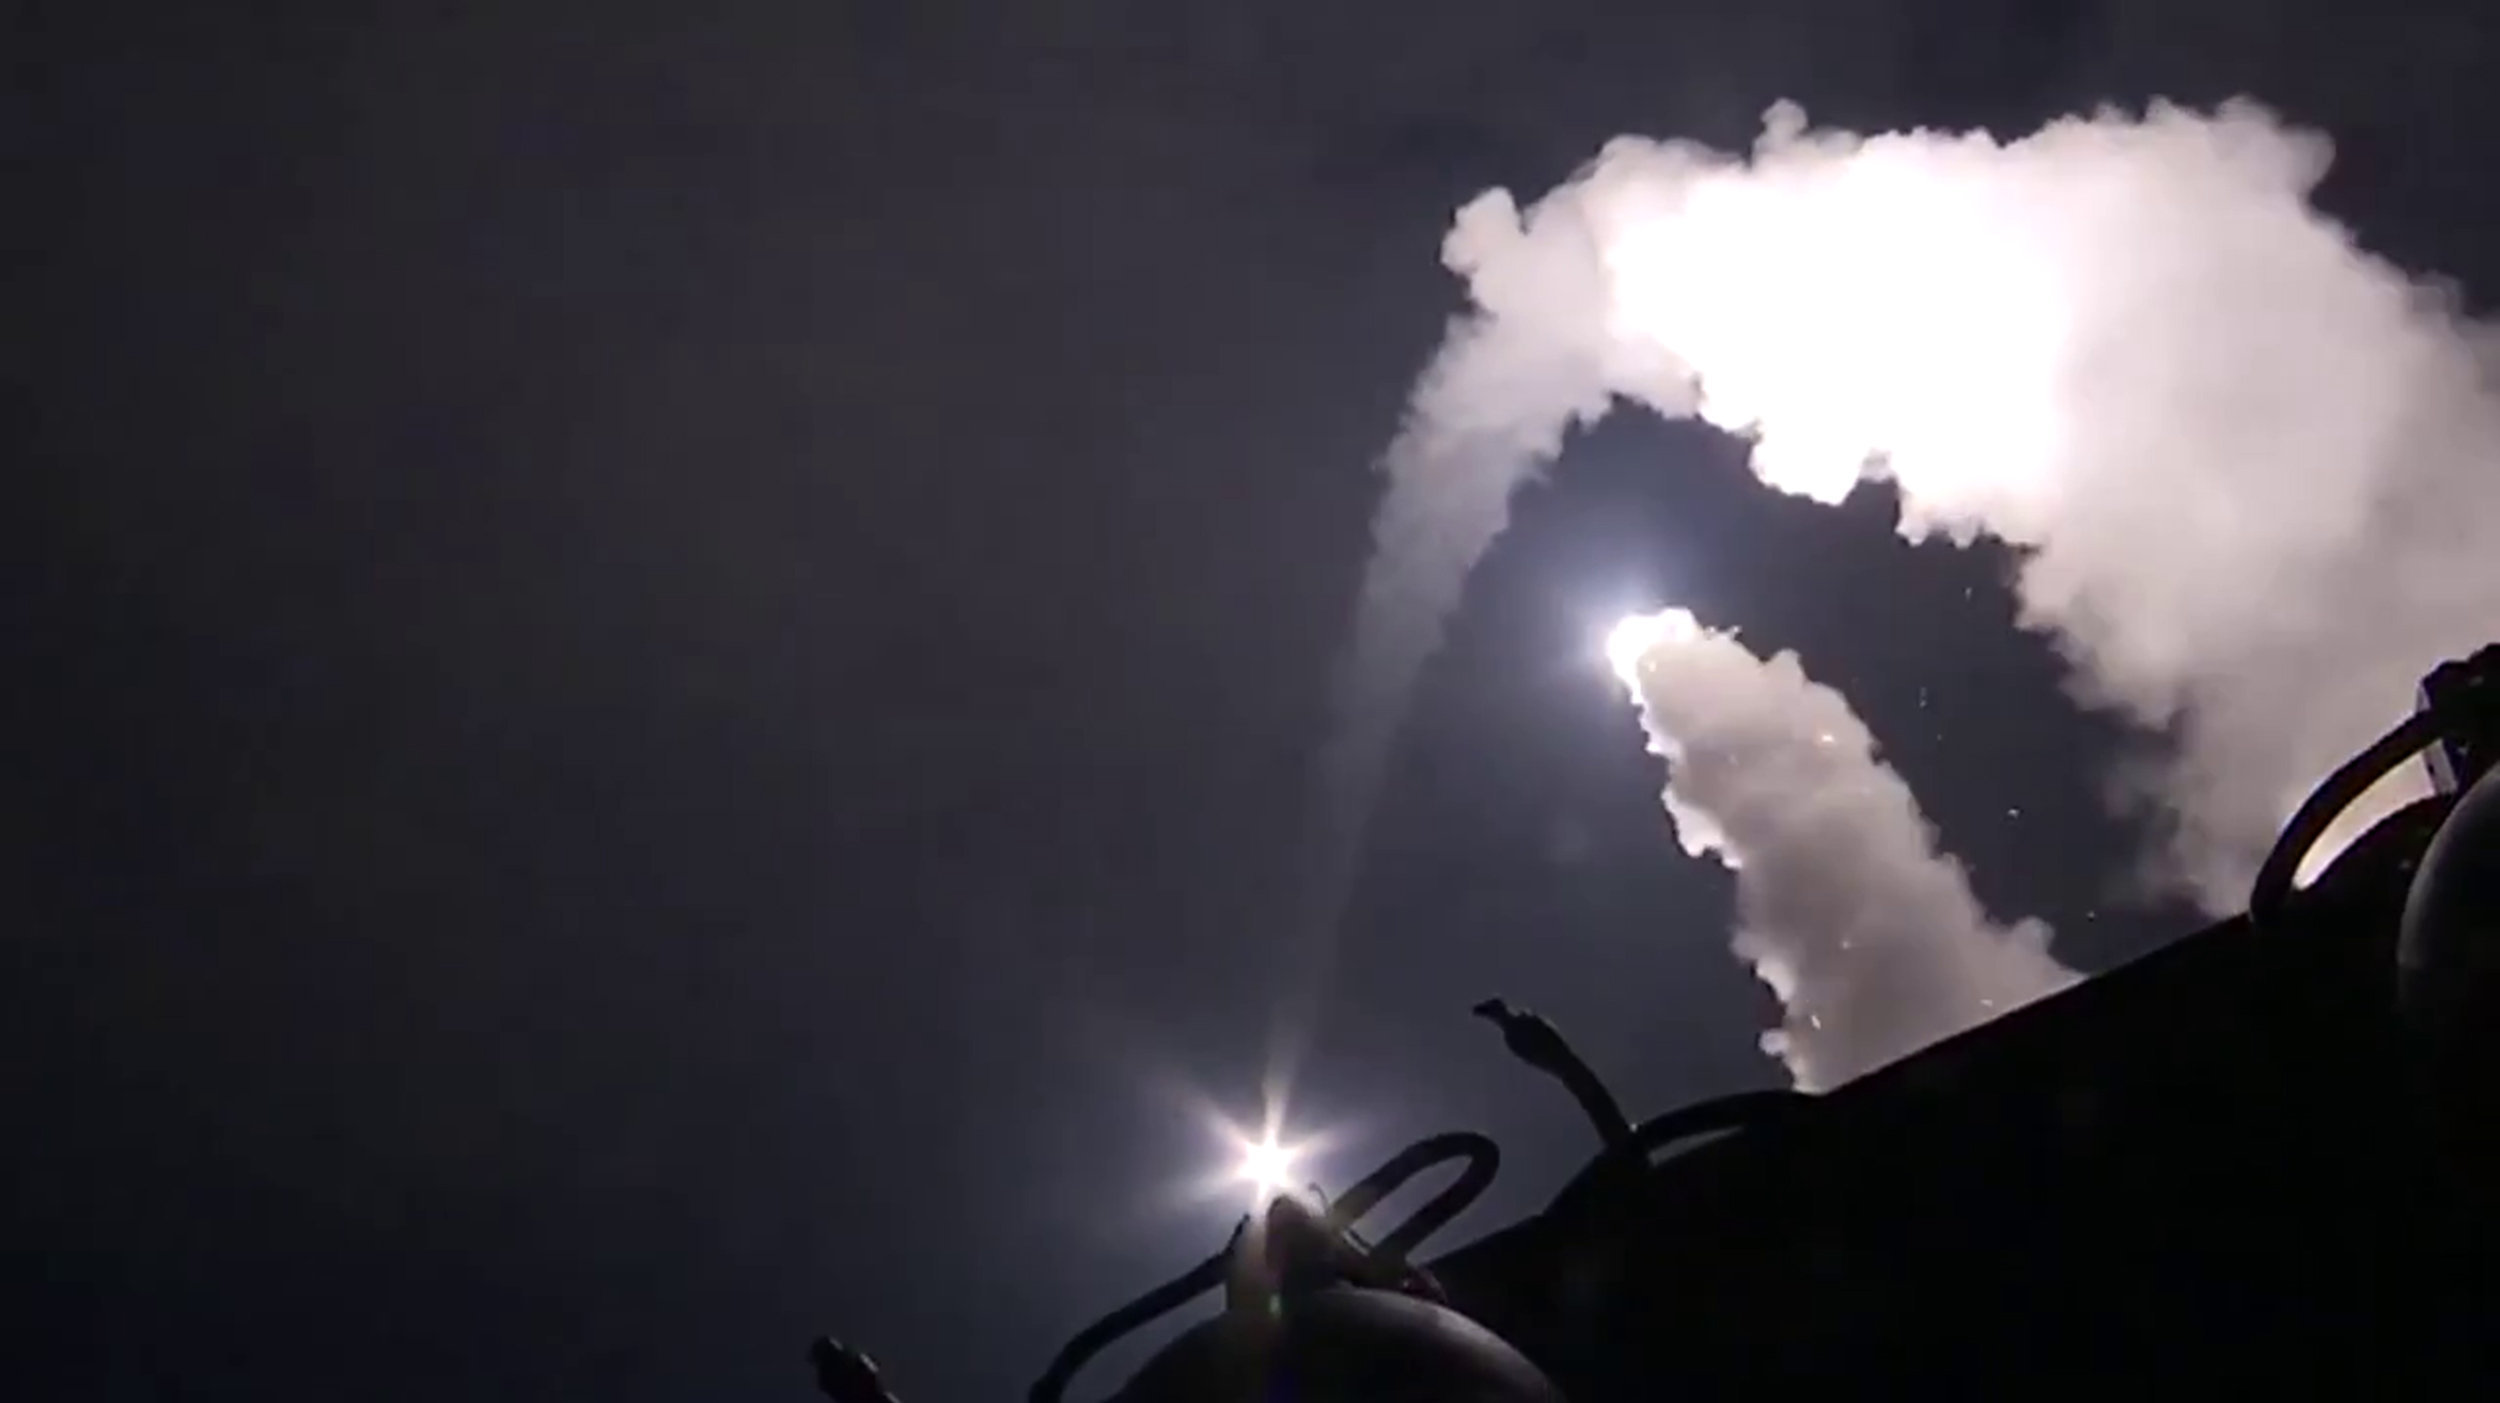 Last month, ships from the Caspian Flotilla launched 26 Kalibr-class cruise missiles from the Caspian Sea at 11 targets in Syria, over 1,500 km away.